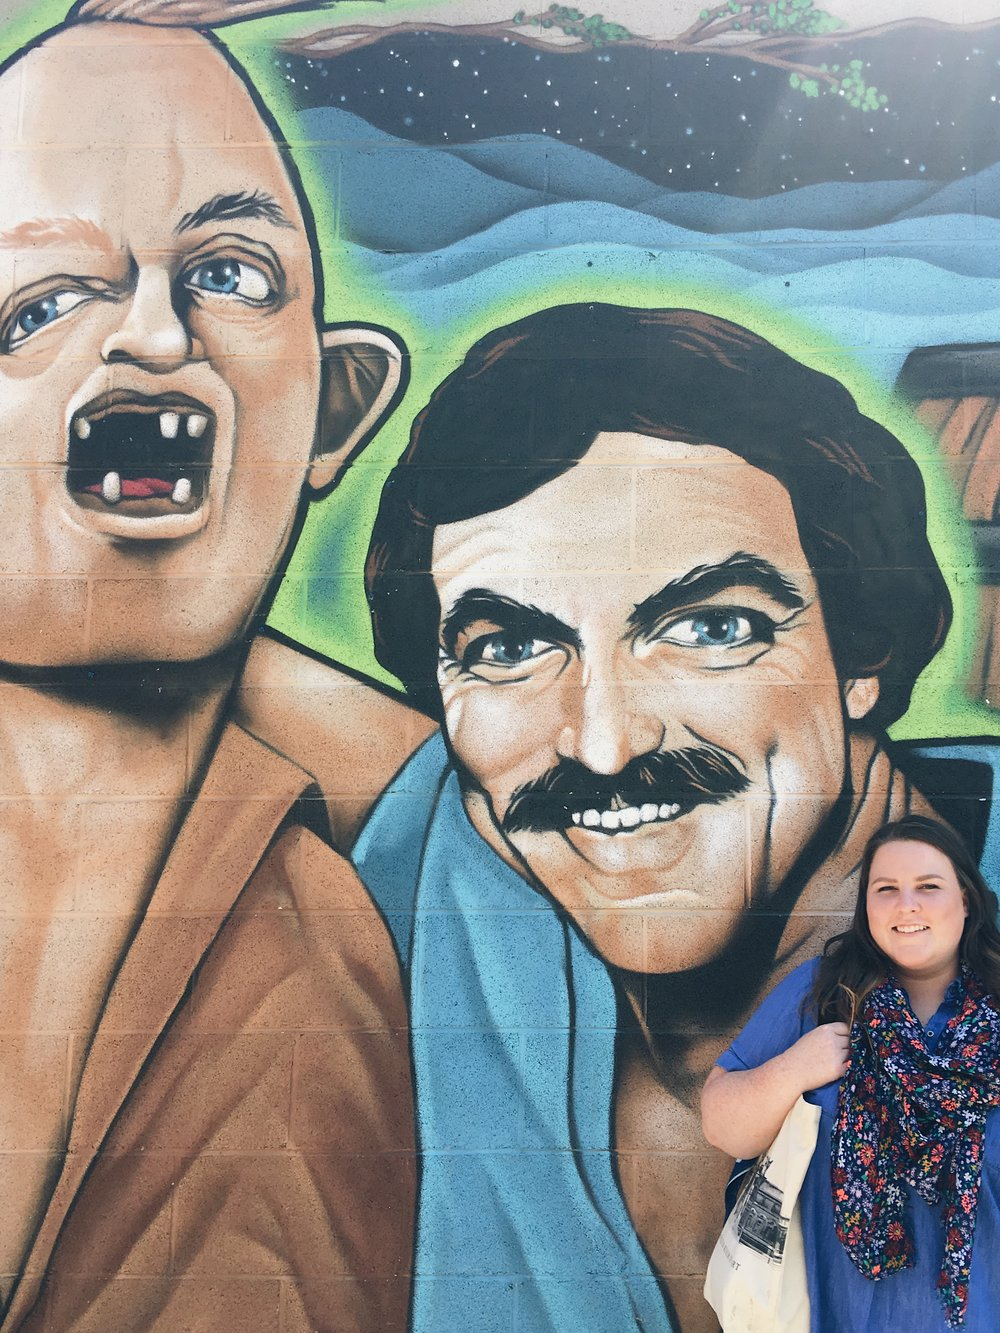 Sloth and Tom Selleck mural at Burial Beer Co.